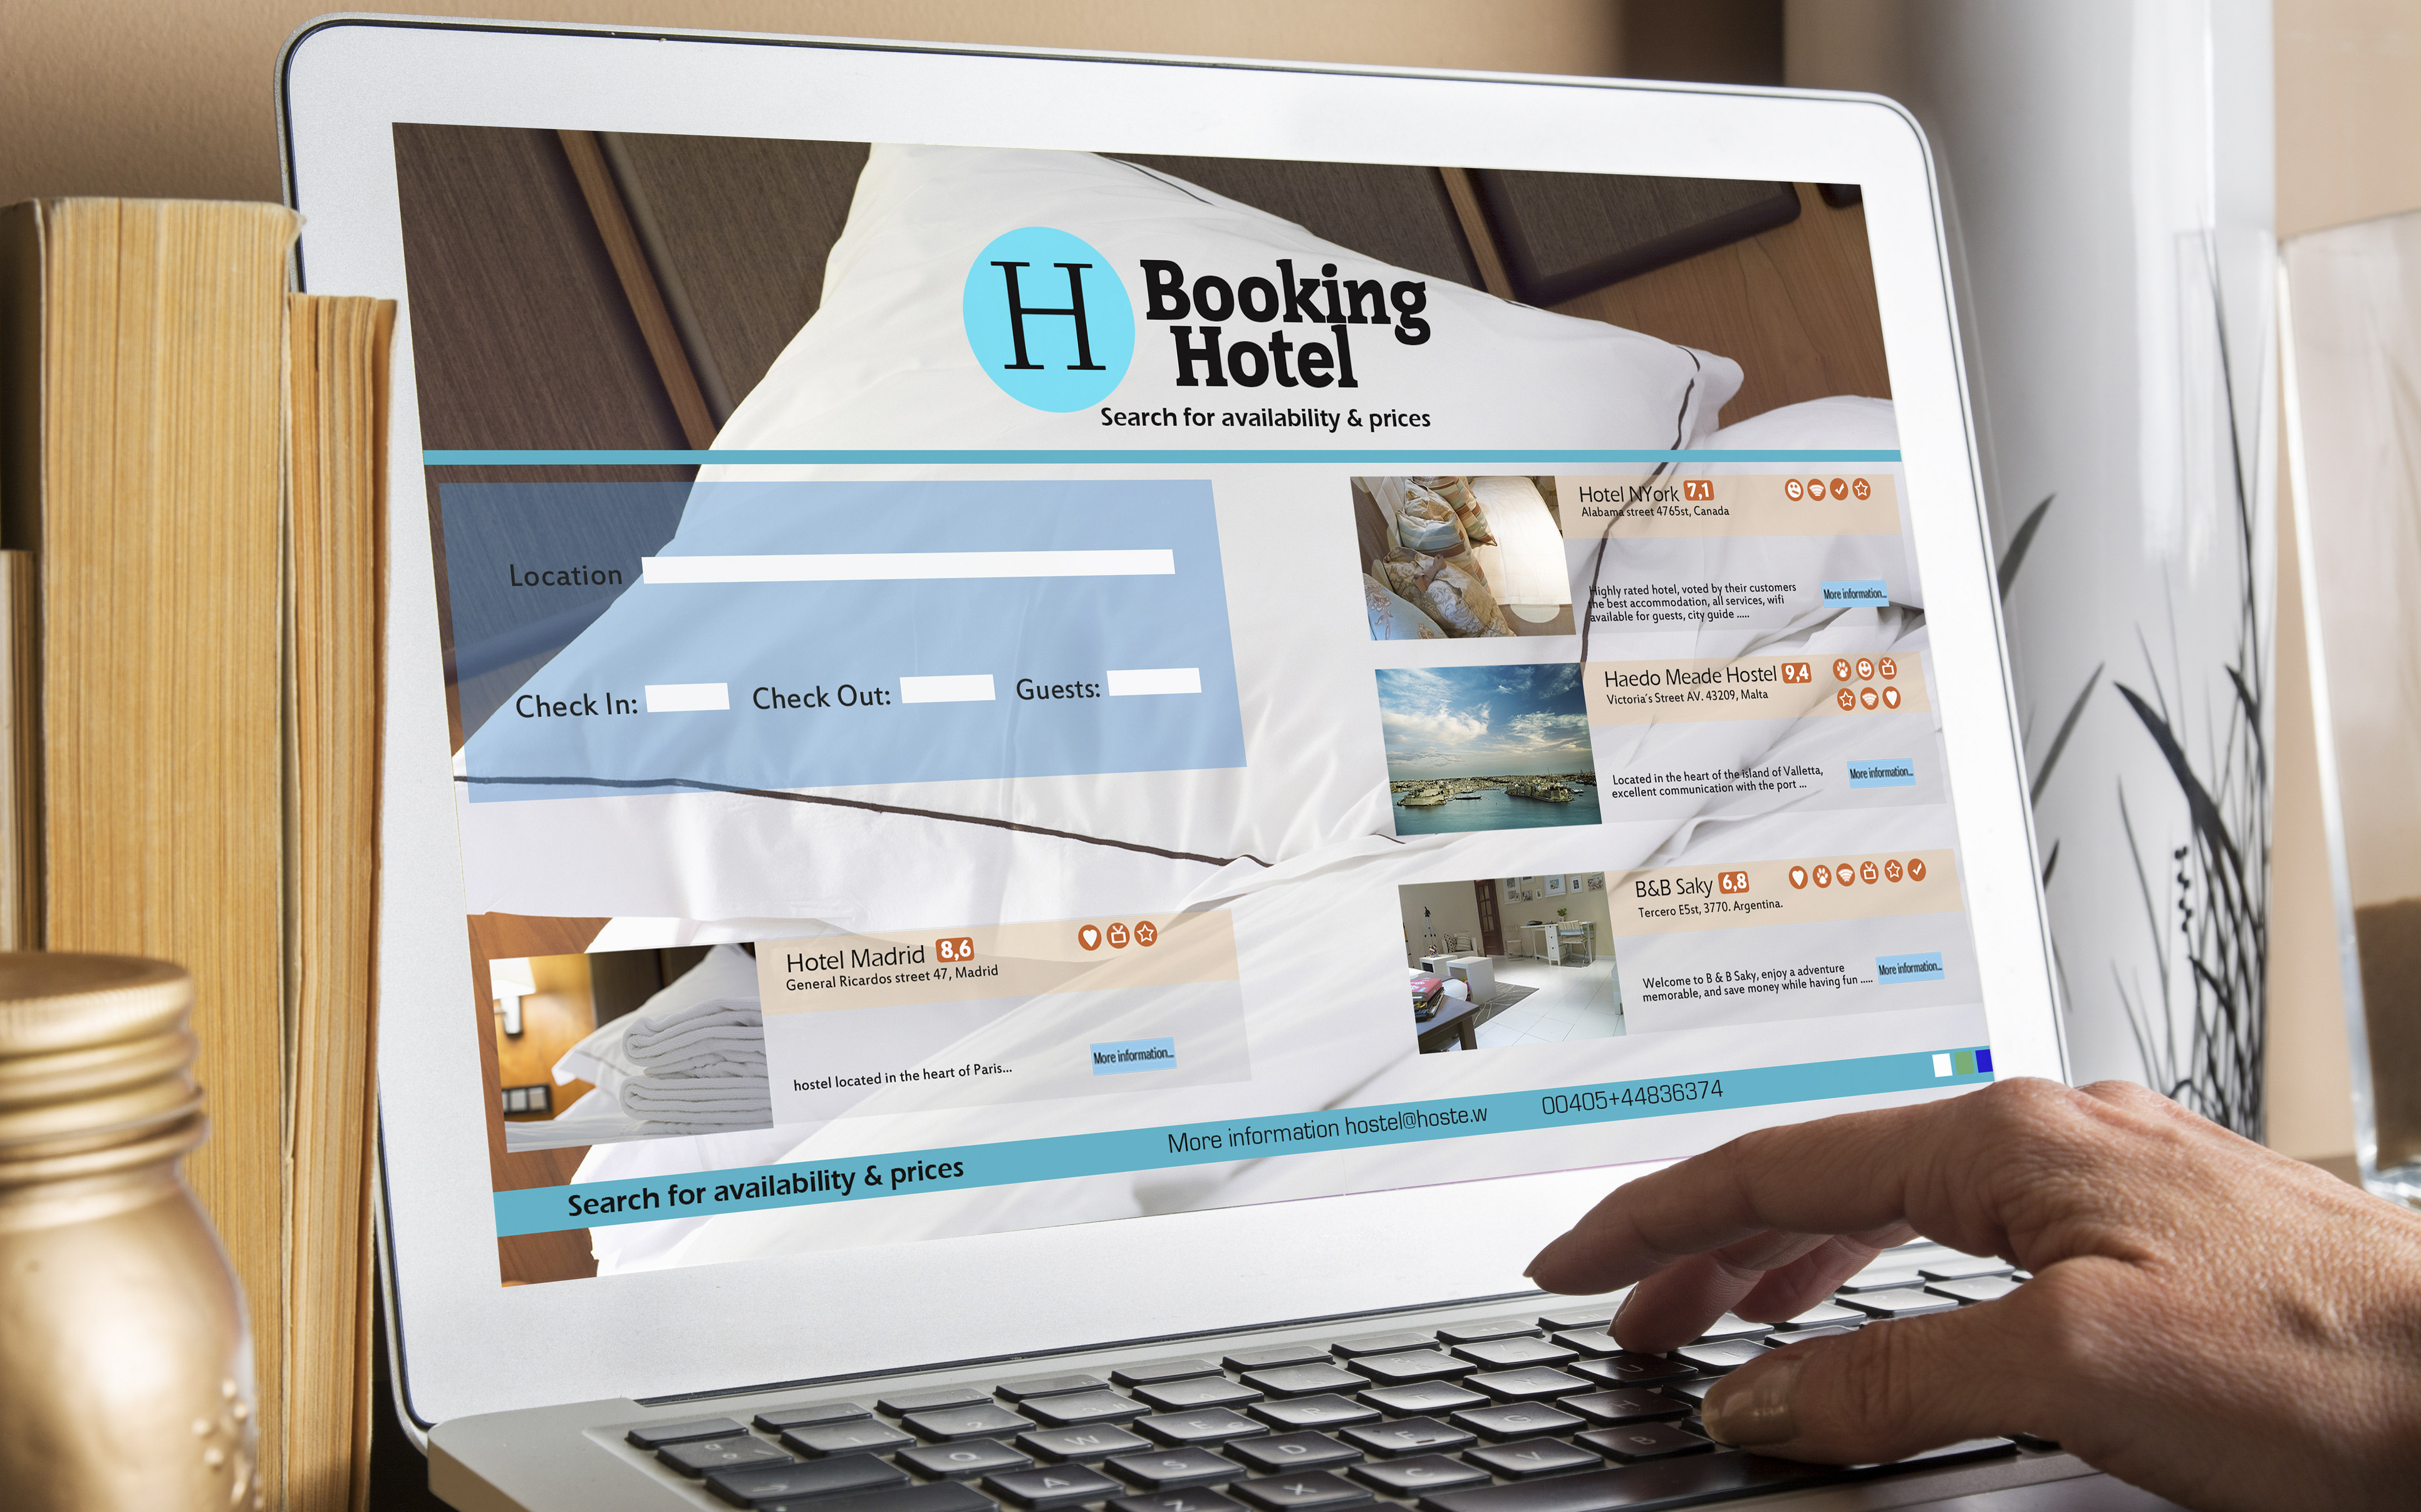 Online hotel bookings to touch one-third mark by 2020: Google-BCG report